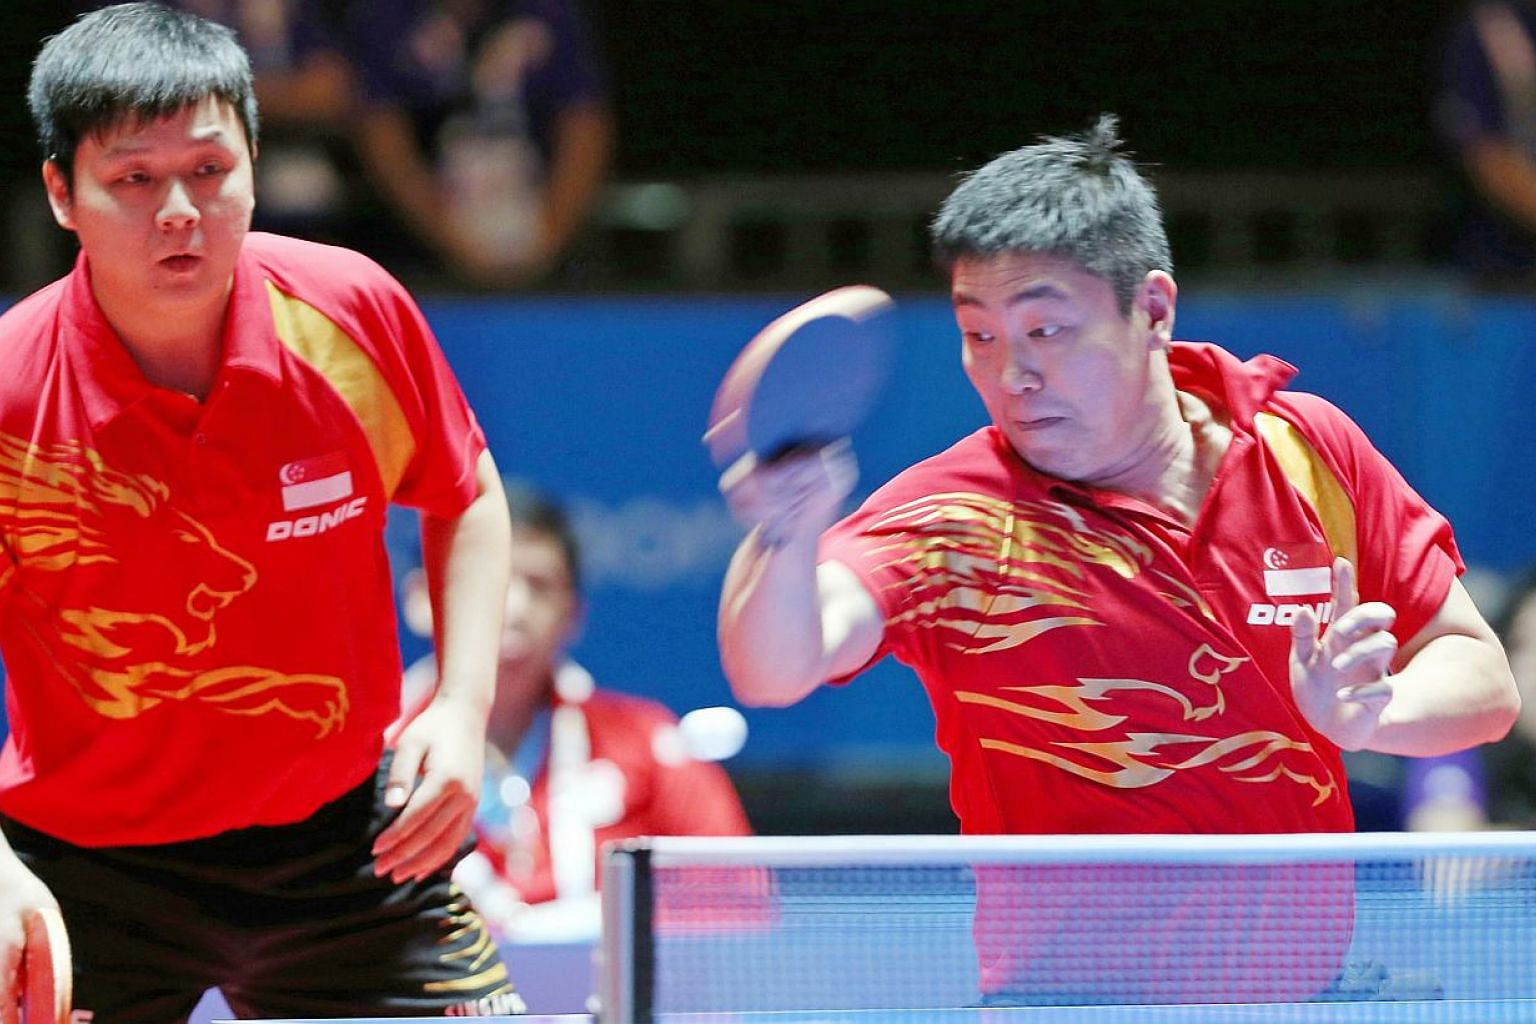 Favourites Gao Ning (right) and Li Hu beat Thailand's Tanviriyavechakul Padasak and Udomsilp Chanakarn in the table tennis men's doubles final to make it two gold medals for Singapore at the 28th SEA Games on Tuesday night . -- ST PHOTO: SEAH KWANG P